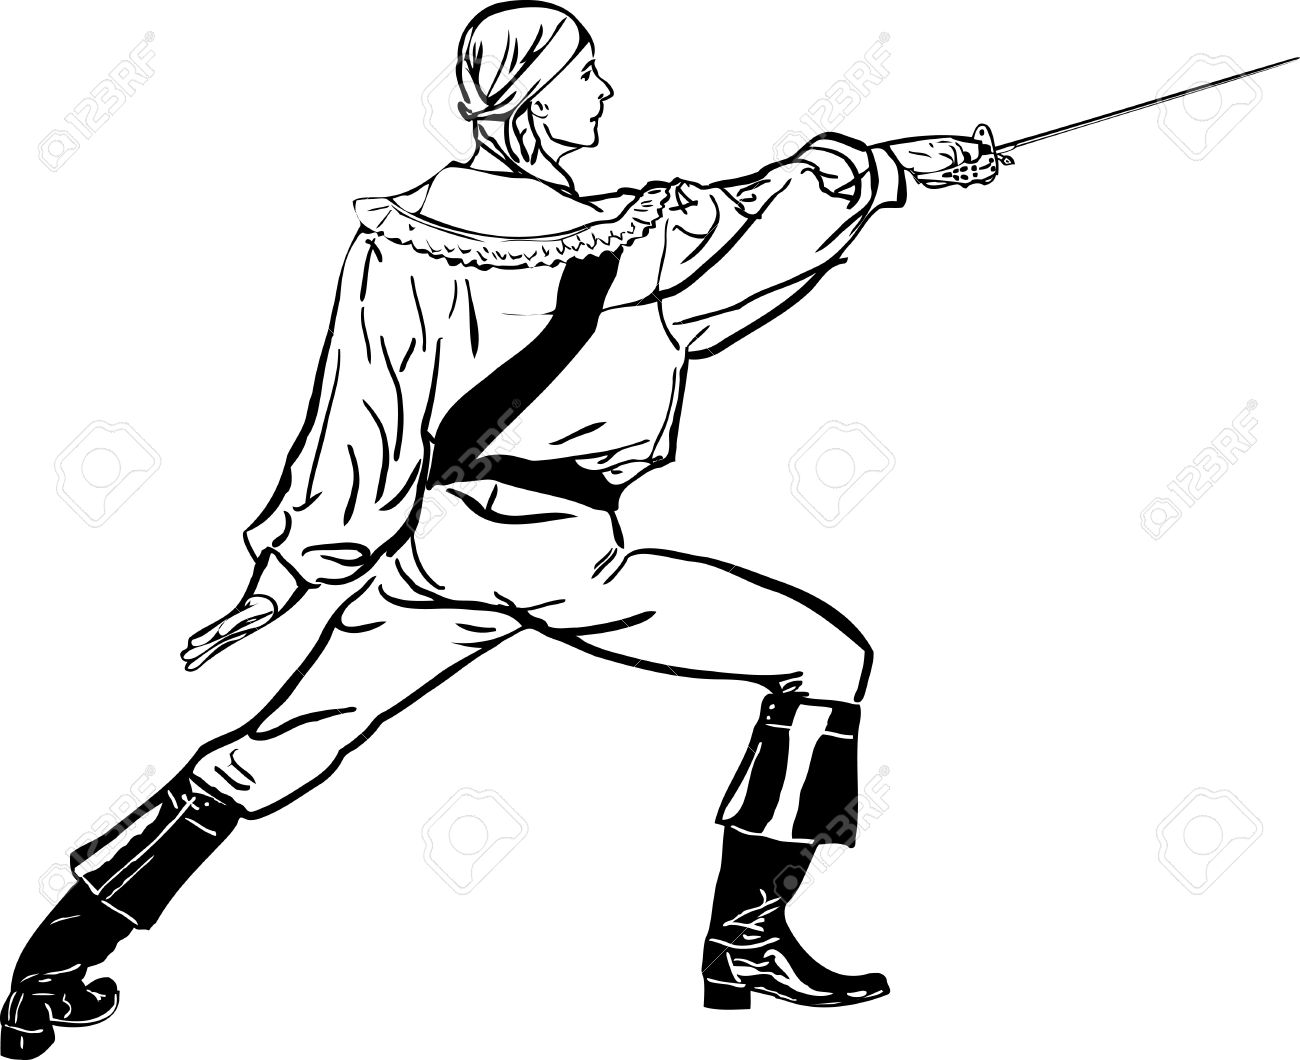 sketch a fencer with a sword lunges forward Stock Vector - 13057008